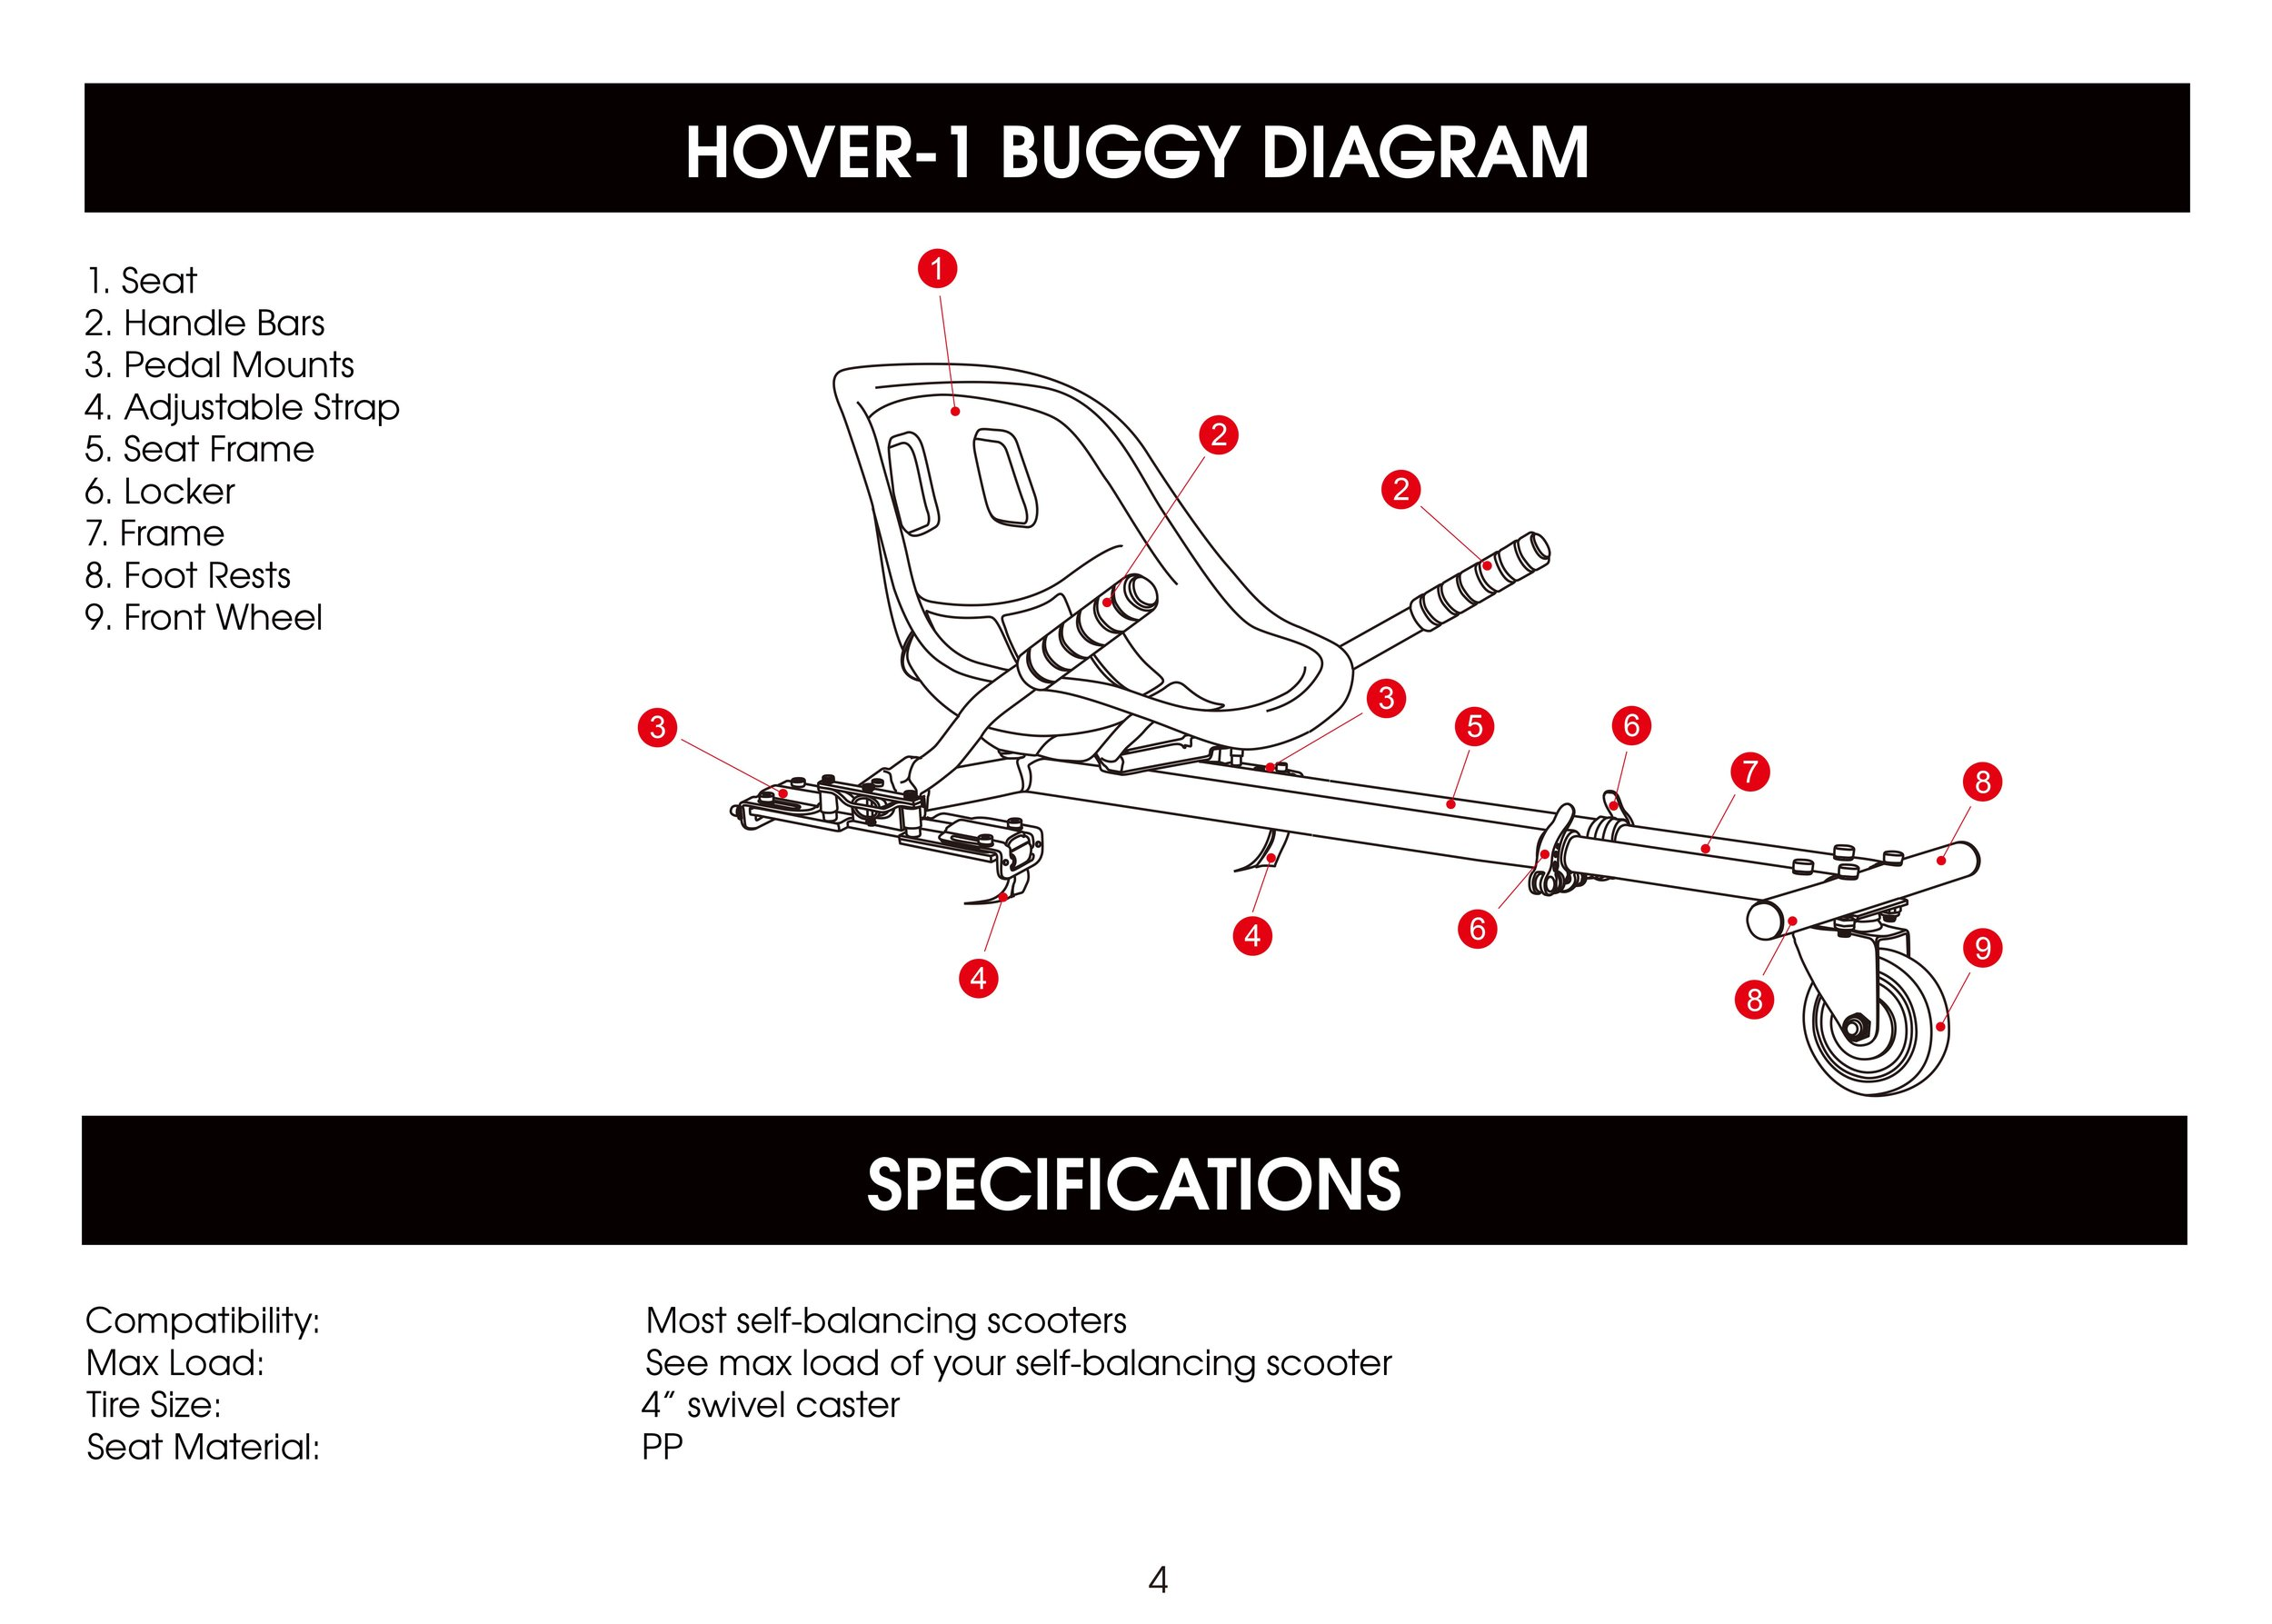 Pages from HY-H1-BGY-Manual_20171030 5.jpg